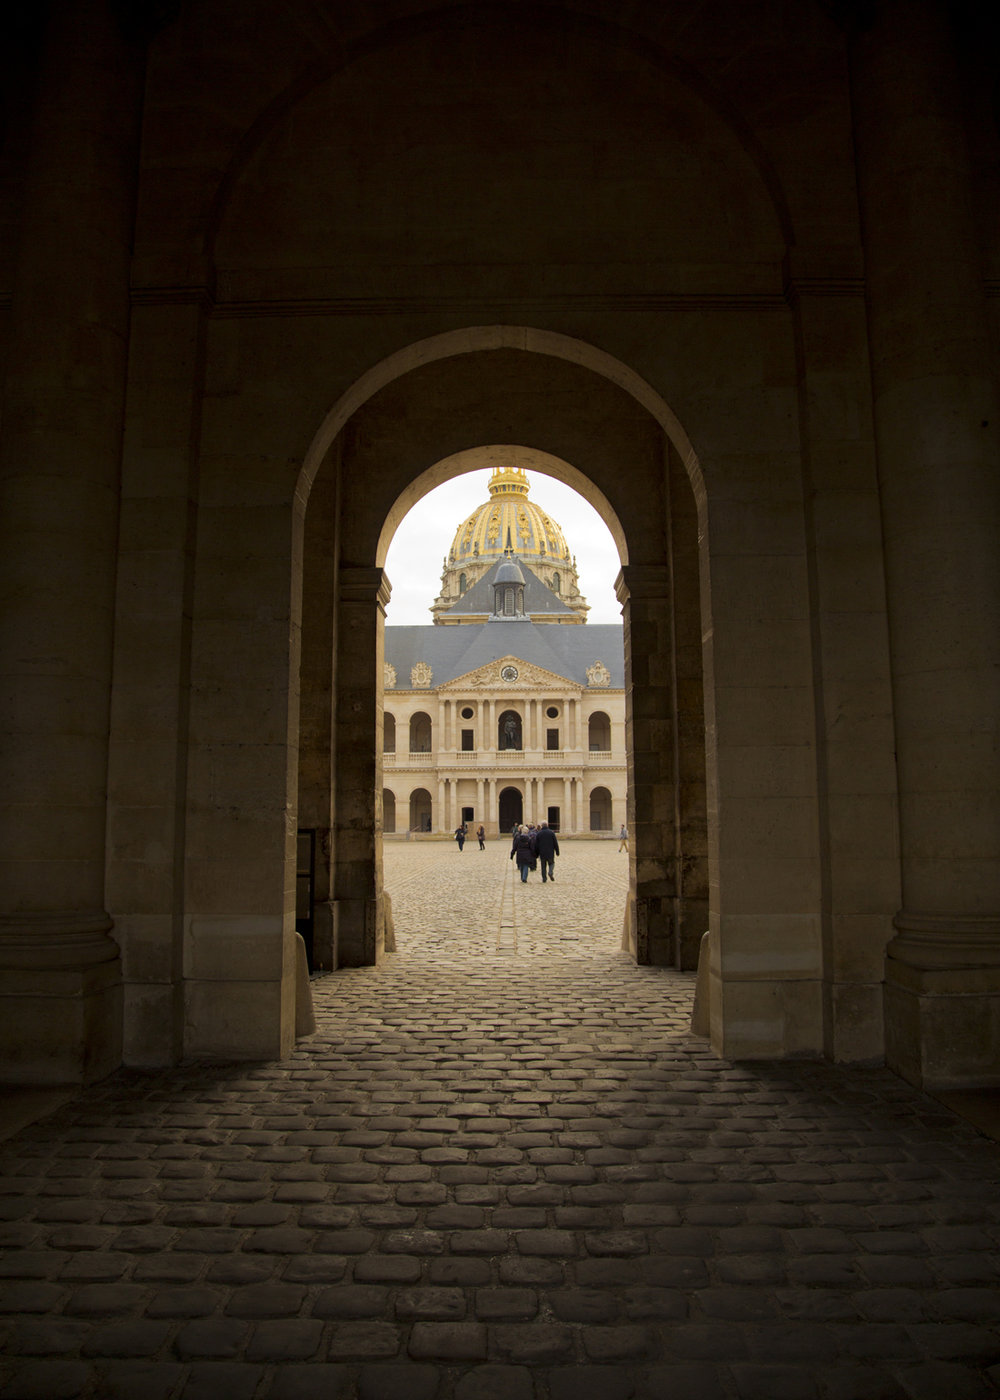 Walking through Les Invalides